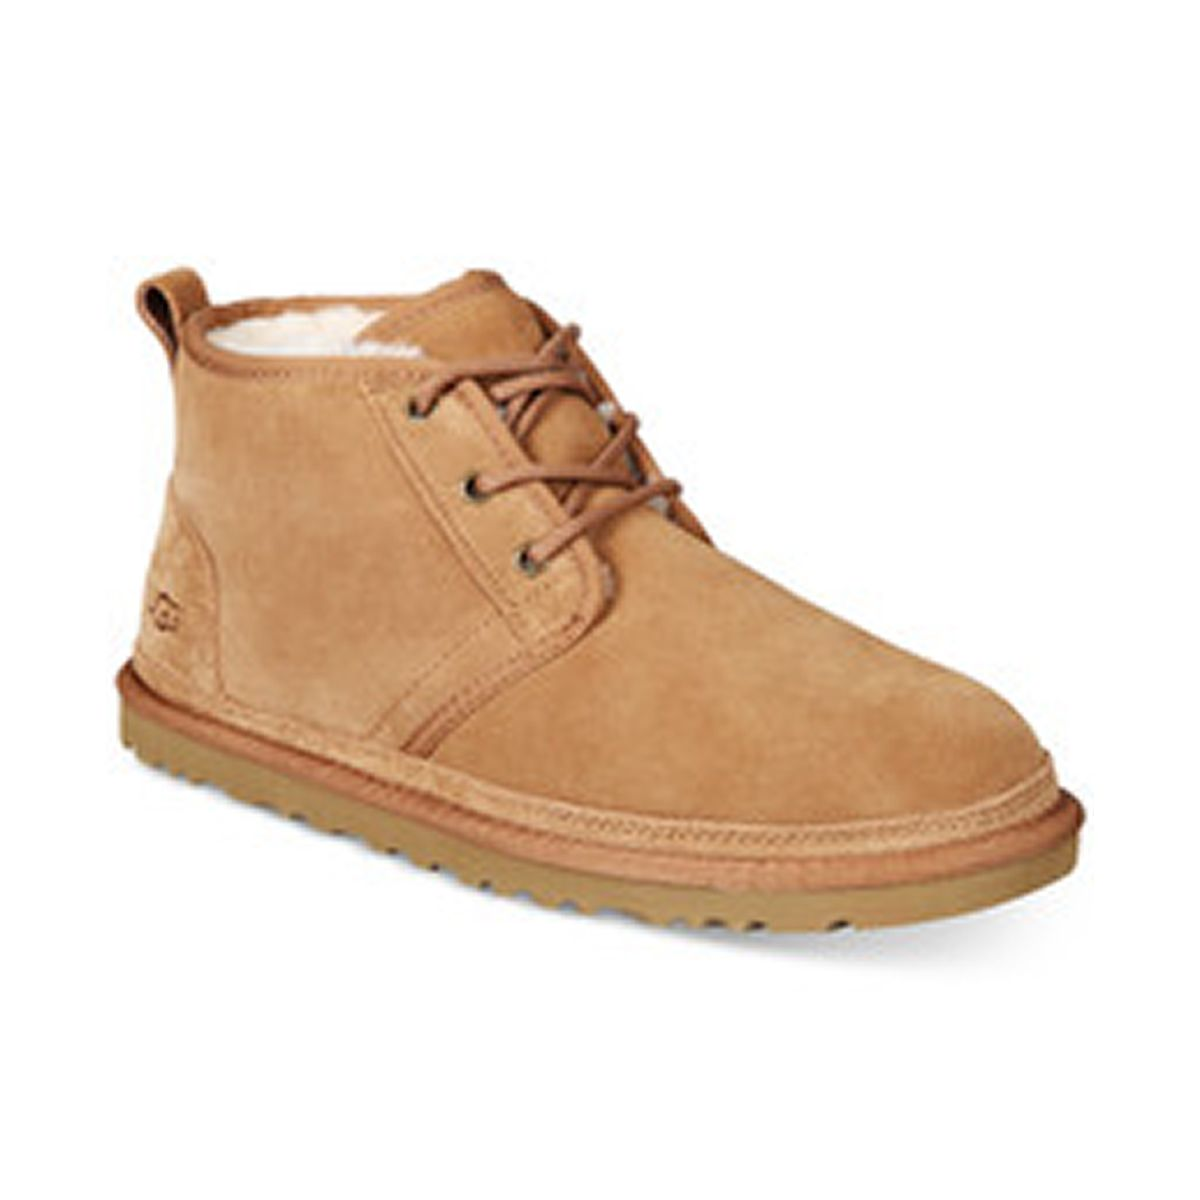 d9ee54a0ecc1 UGG Boots and Shoes for Men - Macy s